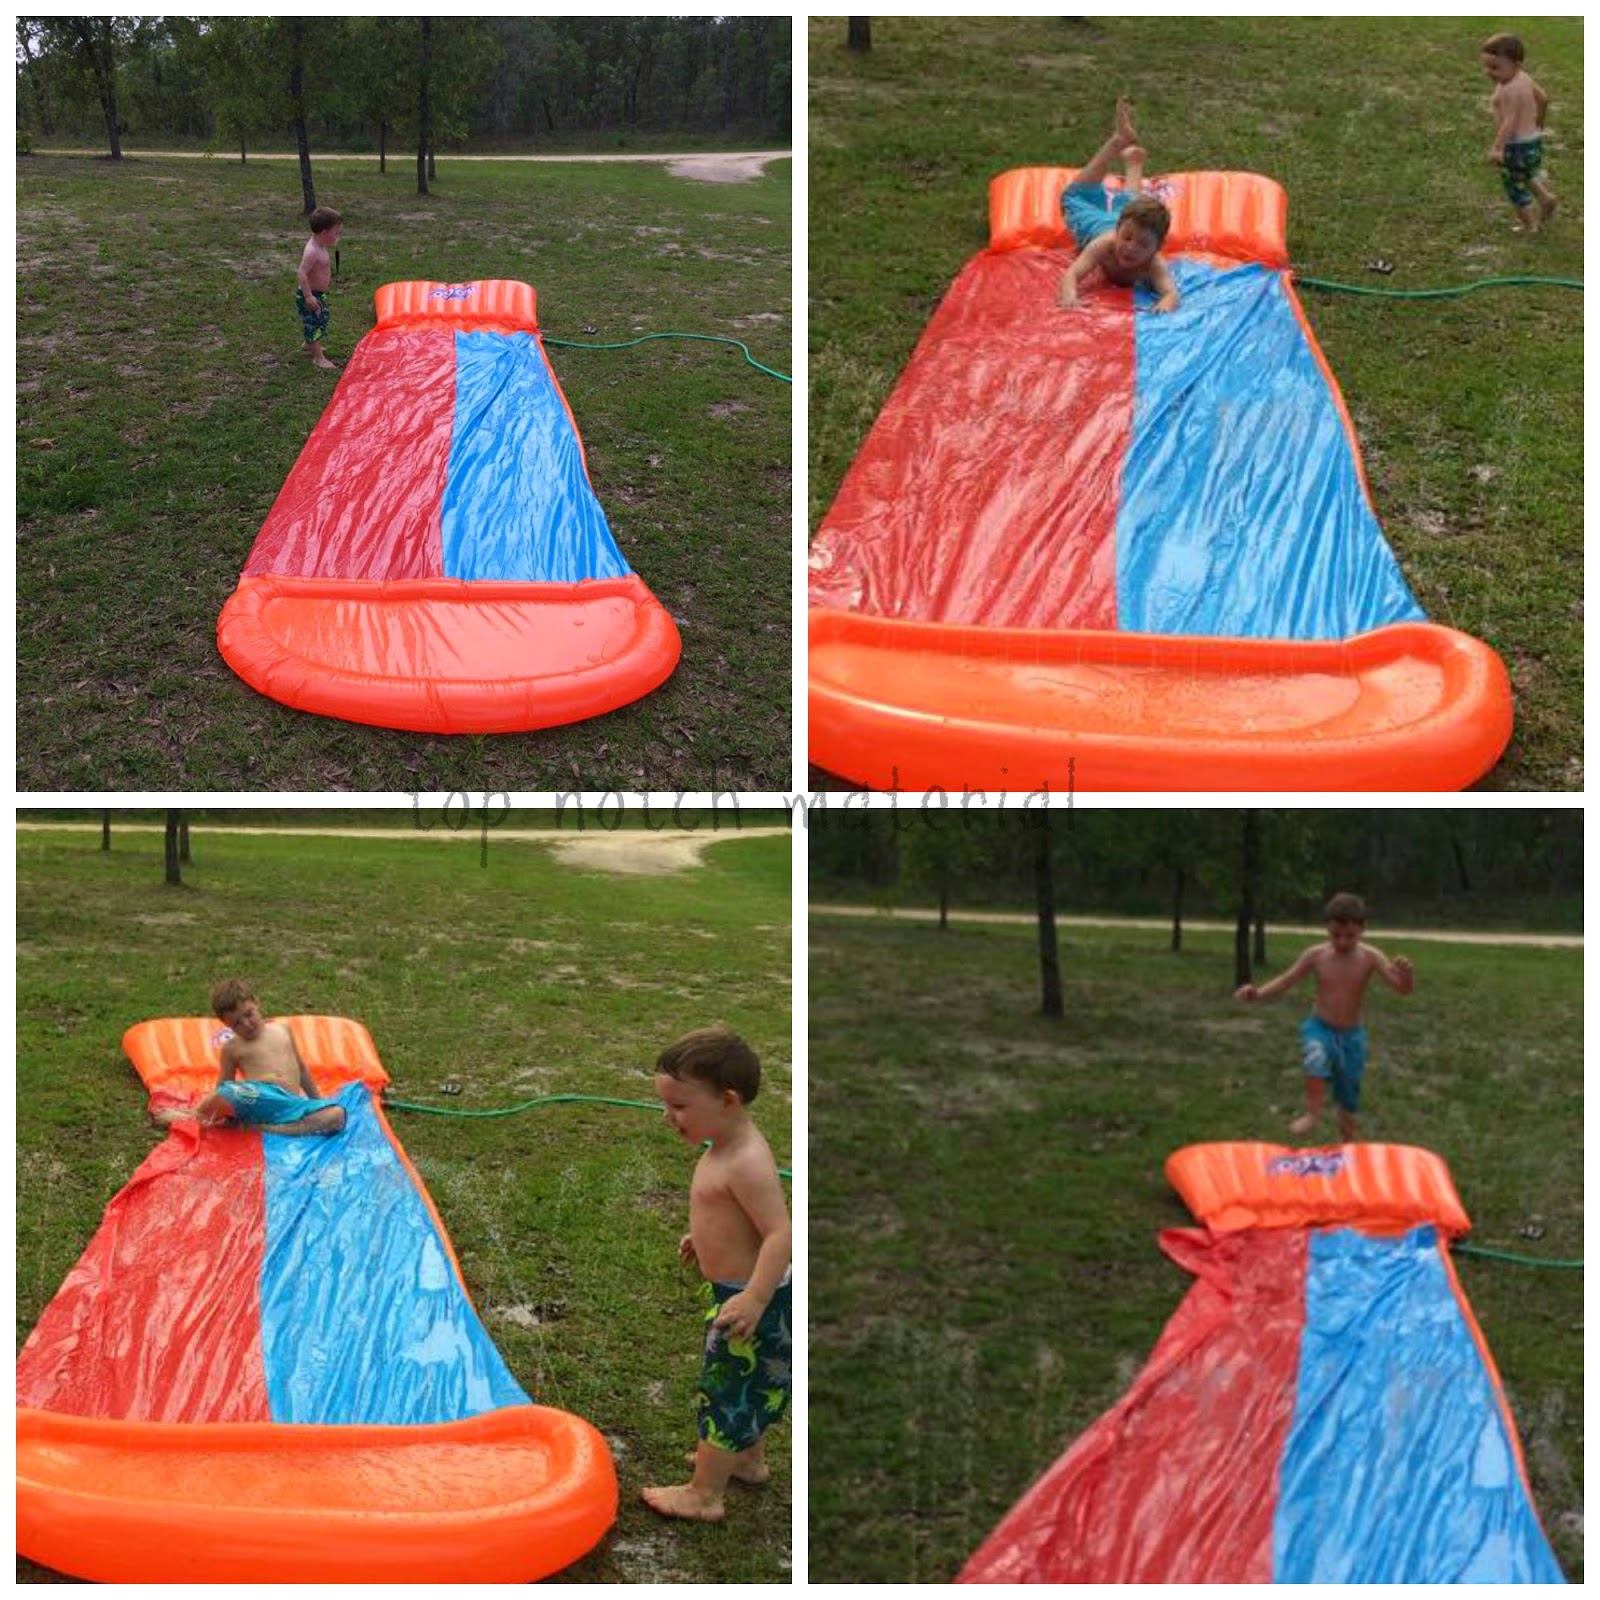 h20go backyard water slide is the world s first line of water slides